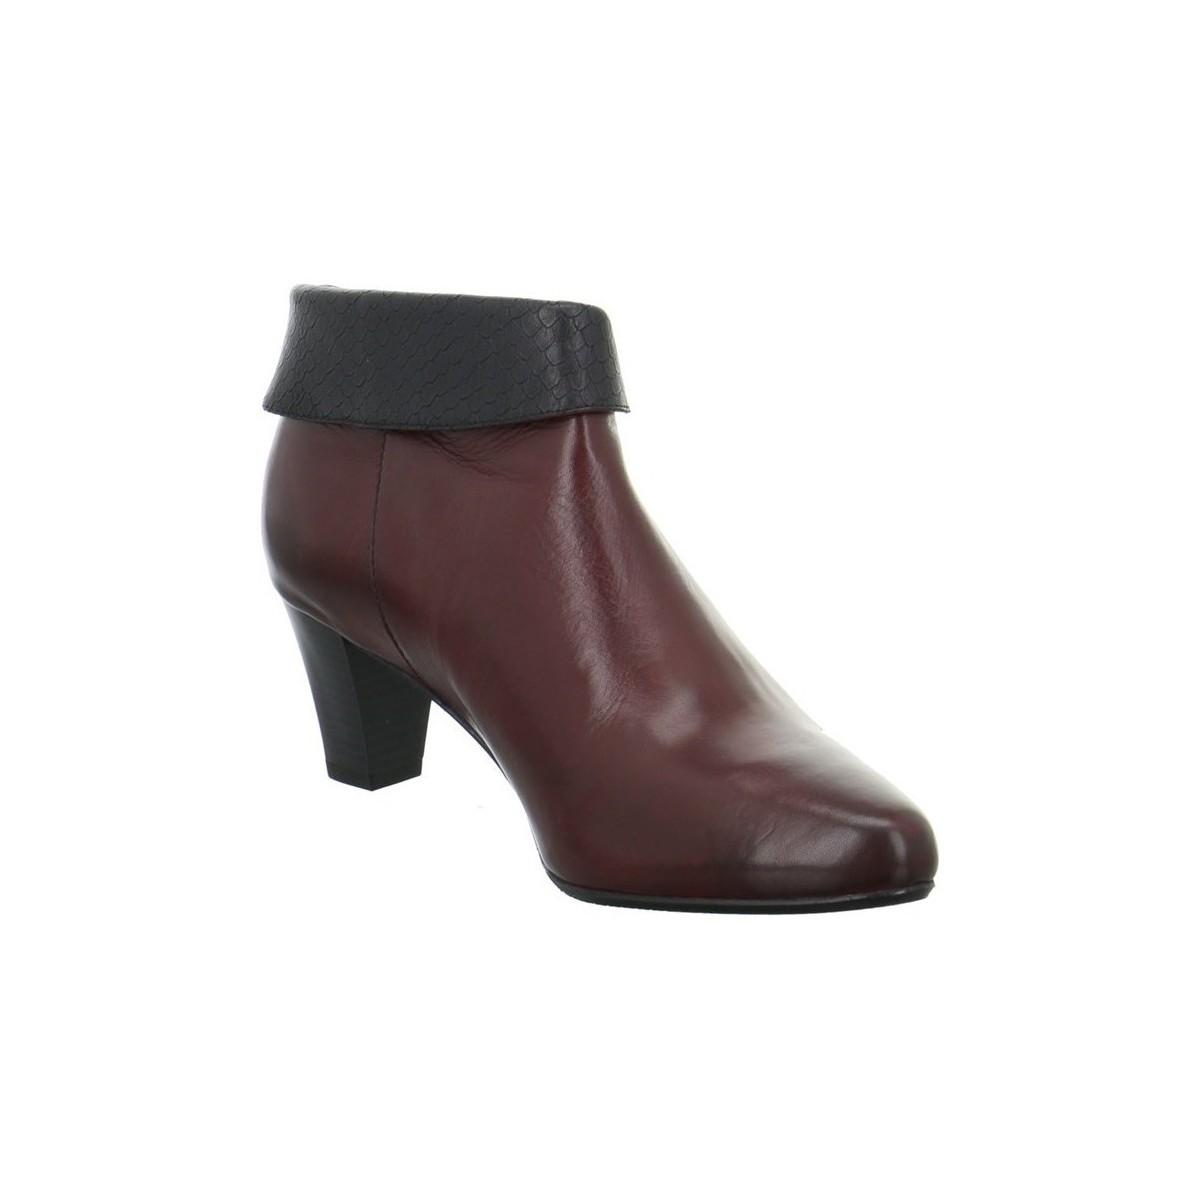 Gerry Weber Lena 01 Women's Low Ankle Boots In Red